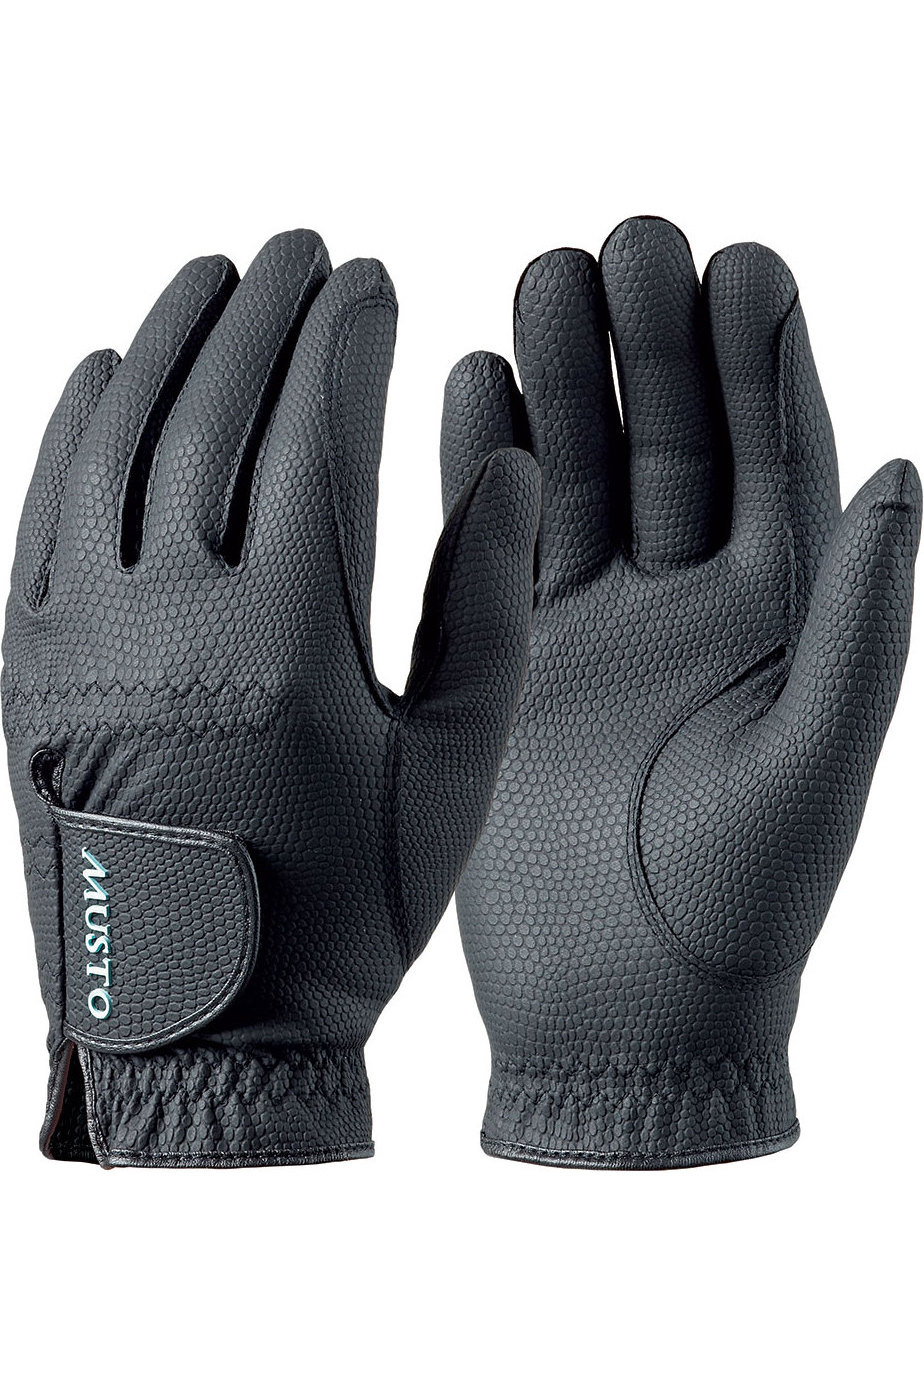 MUSTO Wet Grip Technical Shooting Gloves Green BNWT